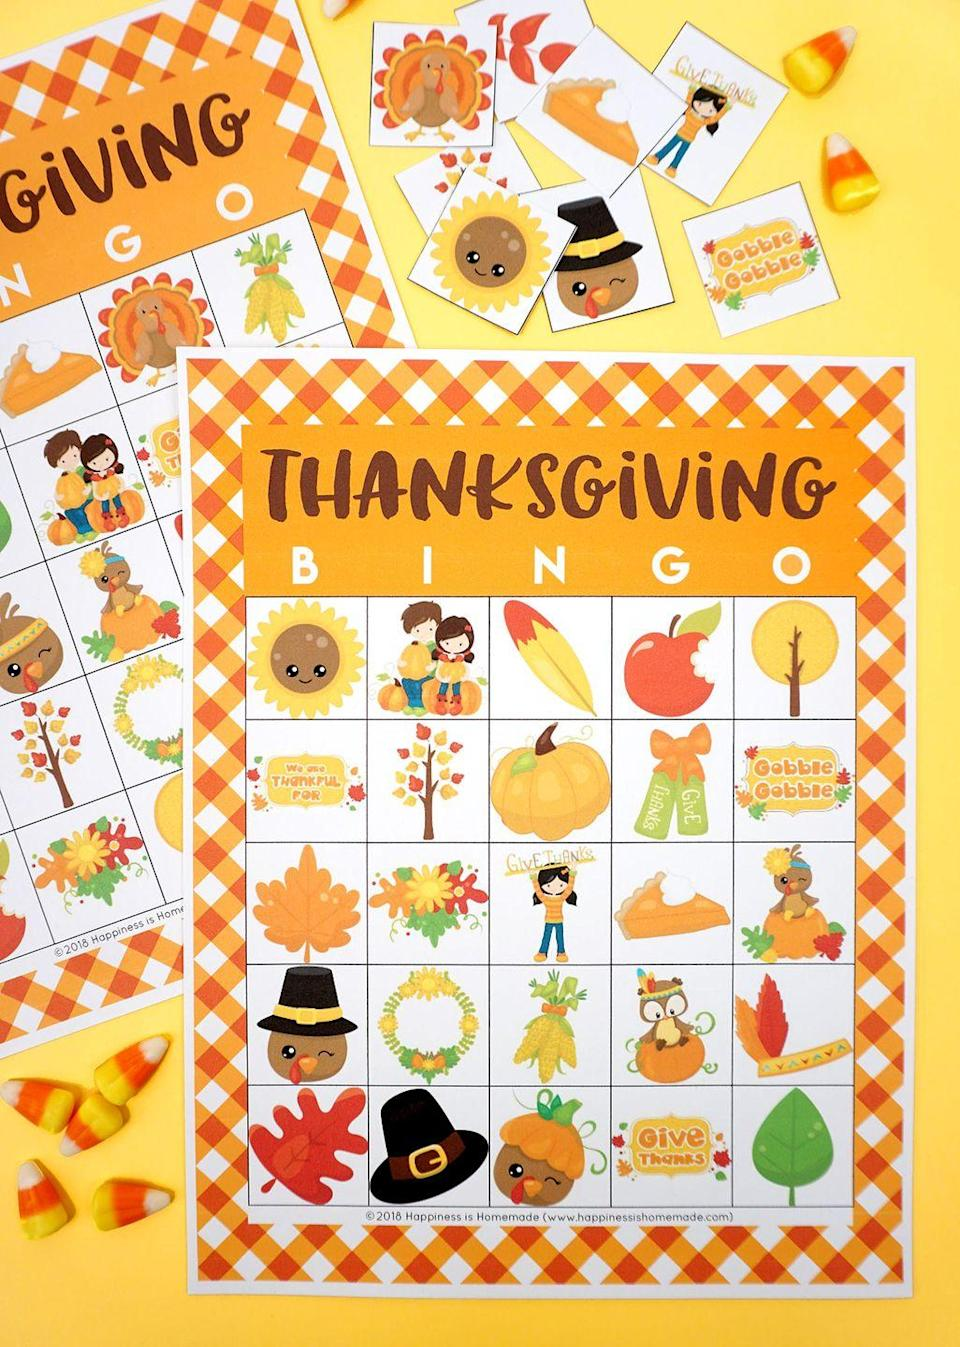 "<p>There's nothing more classic than a round of Bingo. Give the game a Thanksgiving twist by downloading free printable Turkey Day-themed cards online. Celebrating virtually this year? Check out <a href=""https://www.goodhousekeeping.com/life/entertainment/g32098665/best-games-to-play-on-zoom/"" rel=""nofollow noopener"" target=""_blank"" data-ylk=""slk:versions you can play on Zoom"" class=""link rapid-noclick-resp"">versions you can play on Zoom</a>.</p><p><em><a href=""https://www.happinessishomemade.net/free-printable-thanksgiving-bingo-cards/"" rel=""nofollow noopener"" target=""_blank"" data-ylk=""slk:Download the printables at Happiness Is Homemade »"" class=""link rapid-noclick-resp"">Download the printables at Happiness Is Homemade »</a></em></p>"